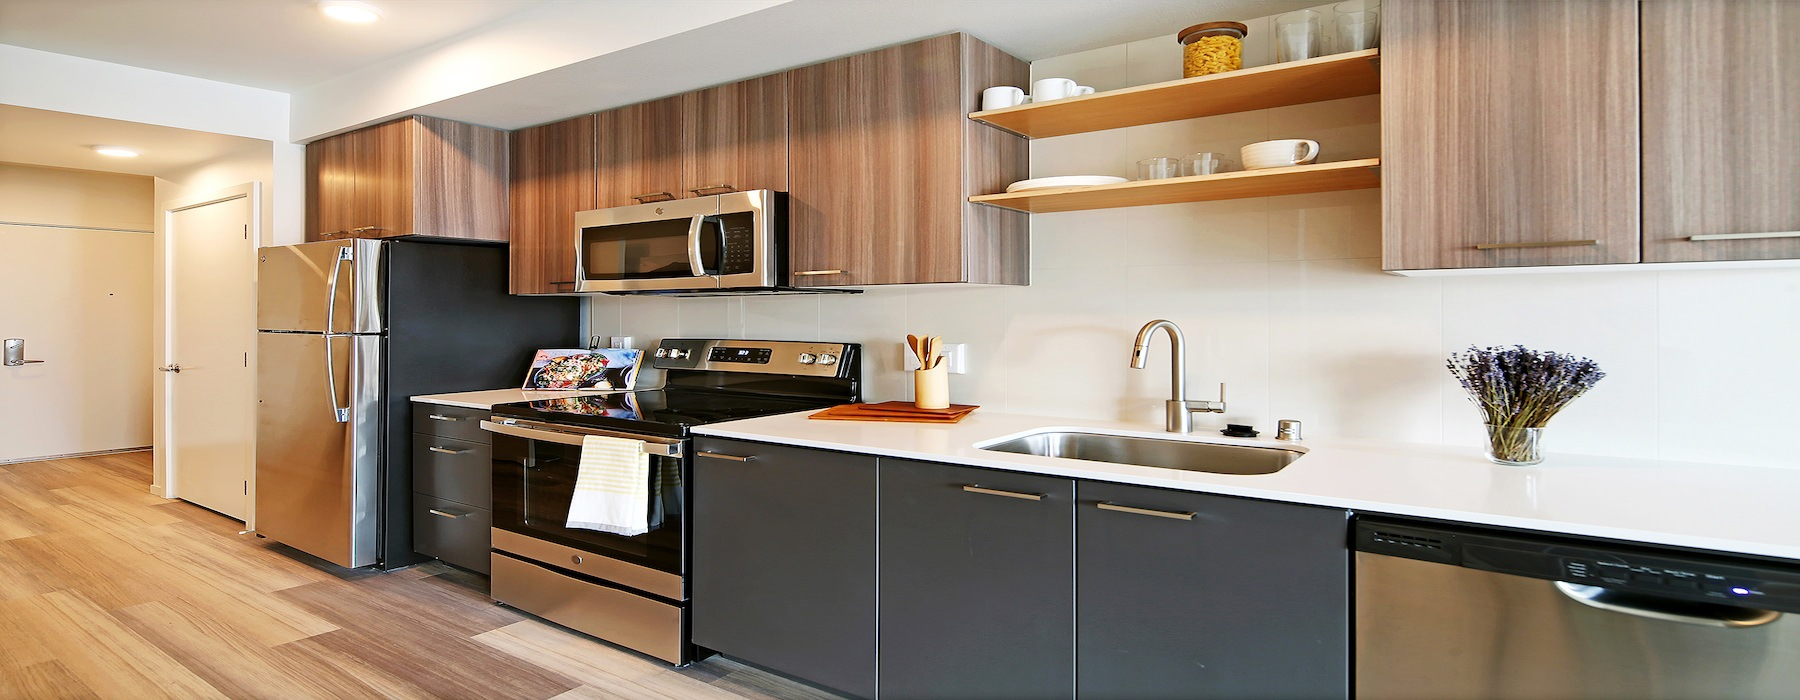 well lit furnished kitchen area with modern wood cabinets and stainless steal appliances